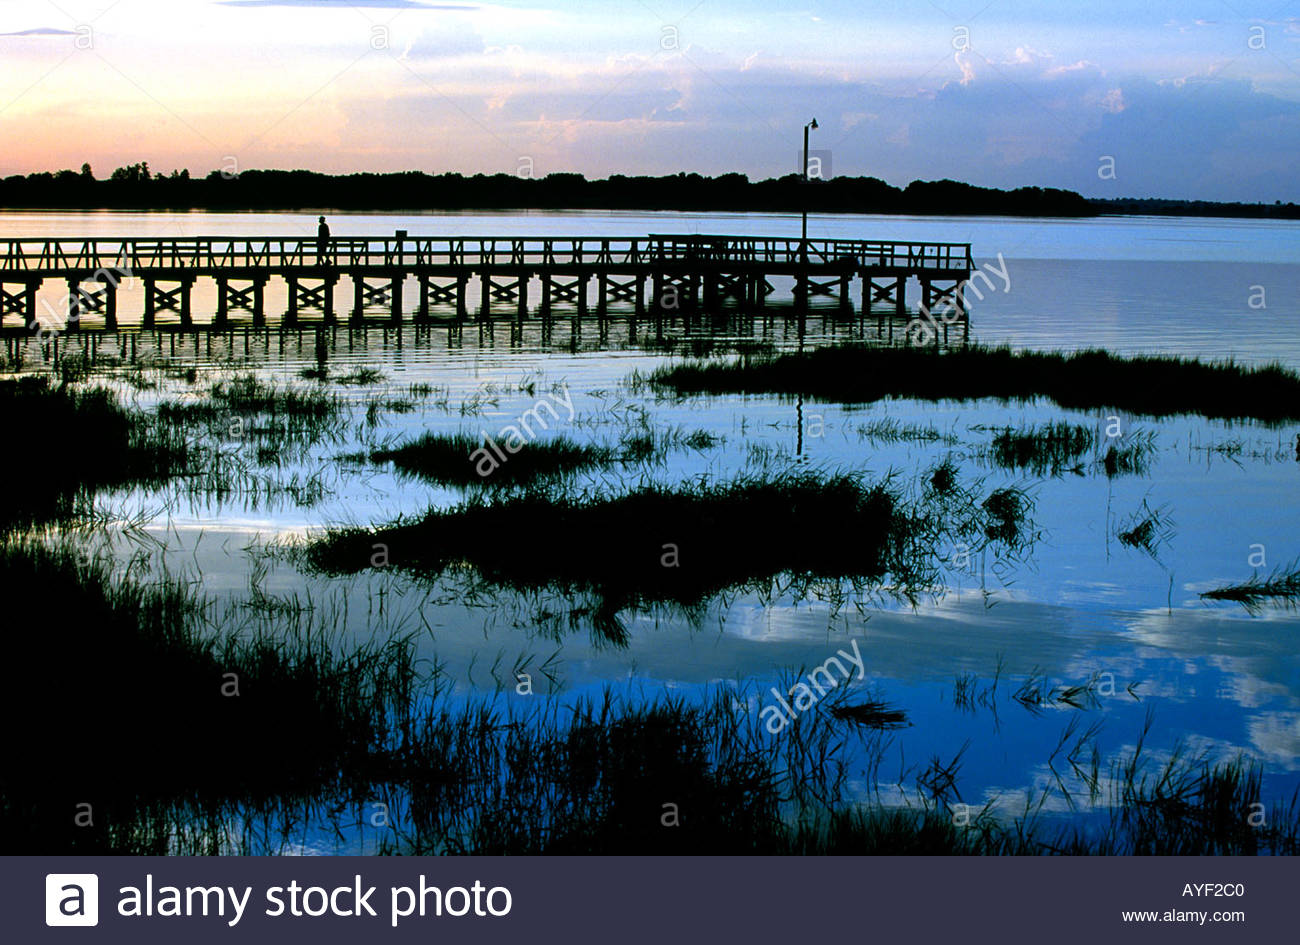 Blue sky and white clouds reflect on Lake Mineola at Clermont Florida USA - Stock Image